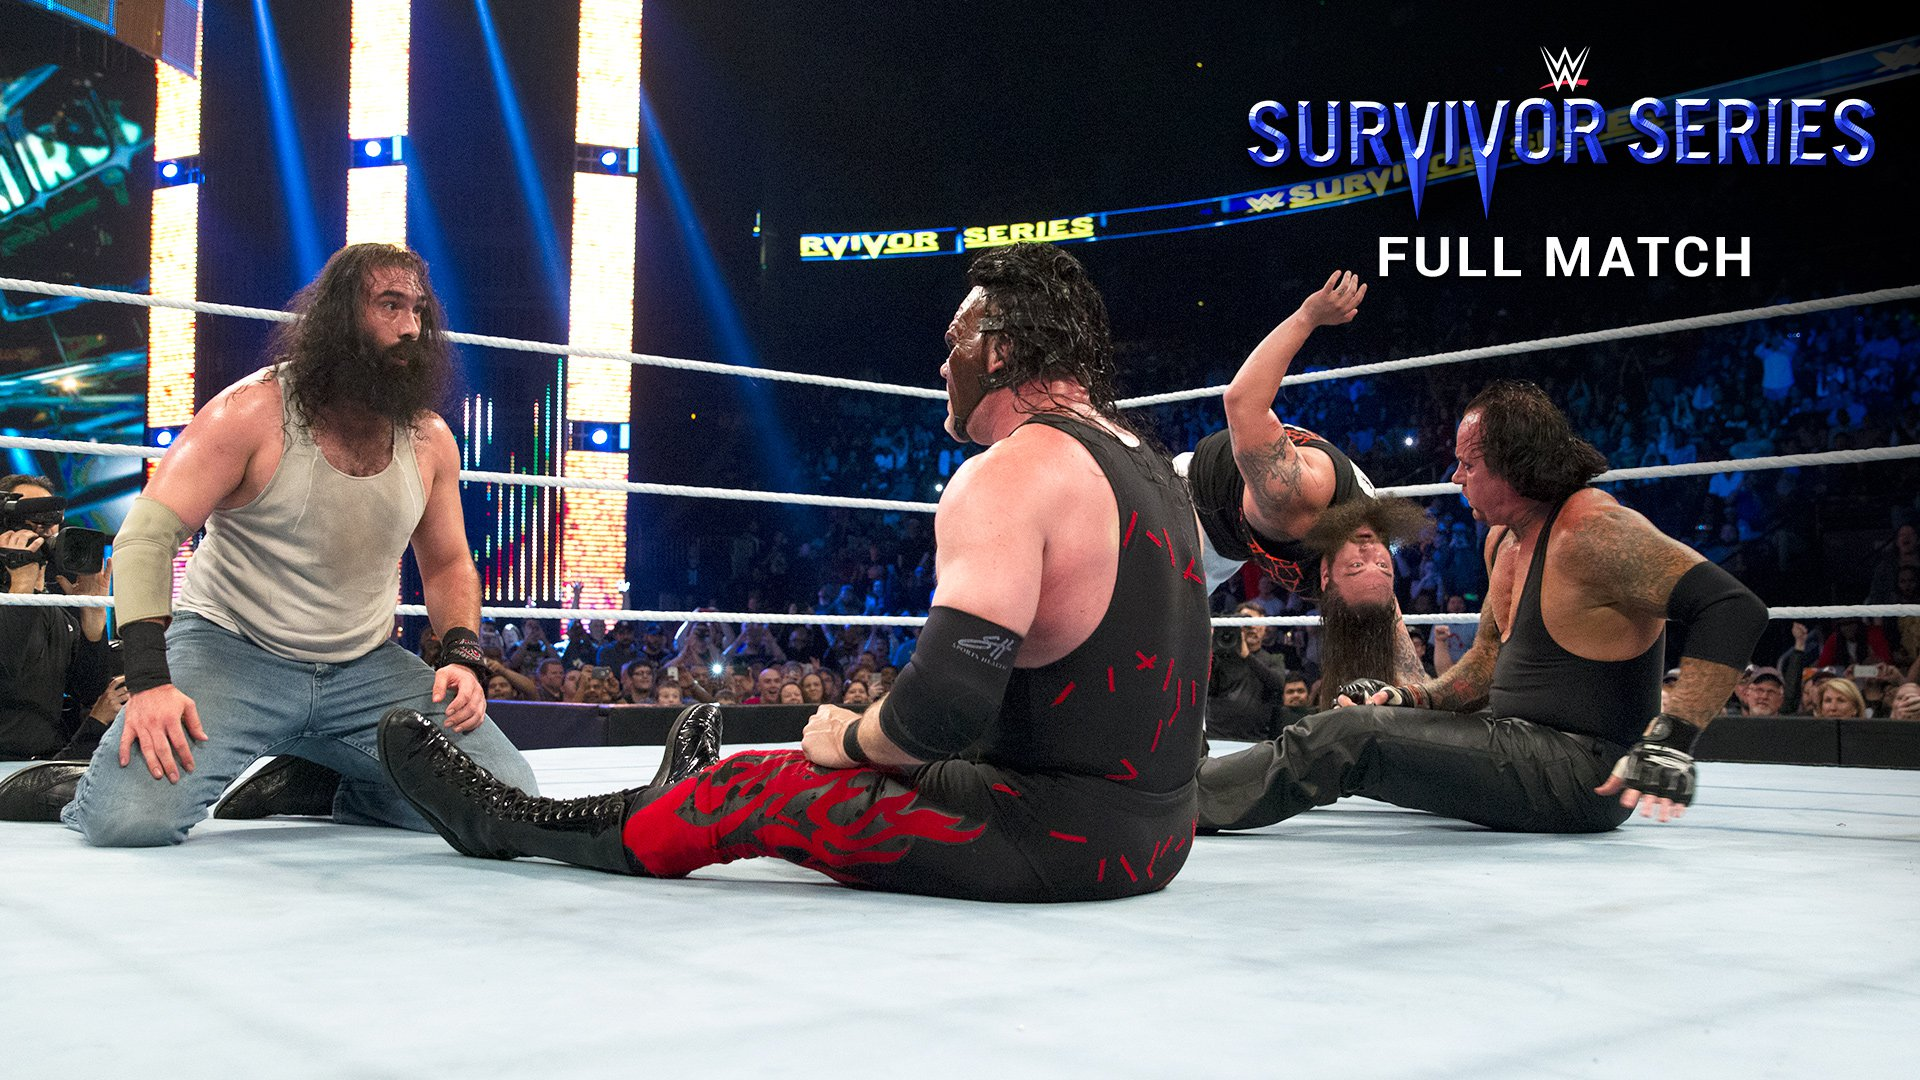 The Brothers of Destruction vs. The Wyatt Family: Survivor Series 2015 (Full match - WWE Network Exclusive)